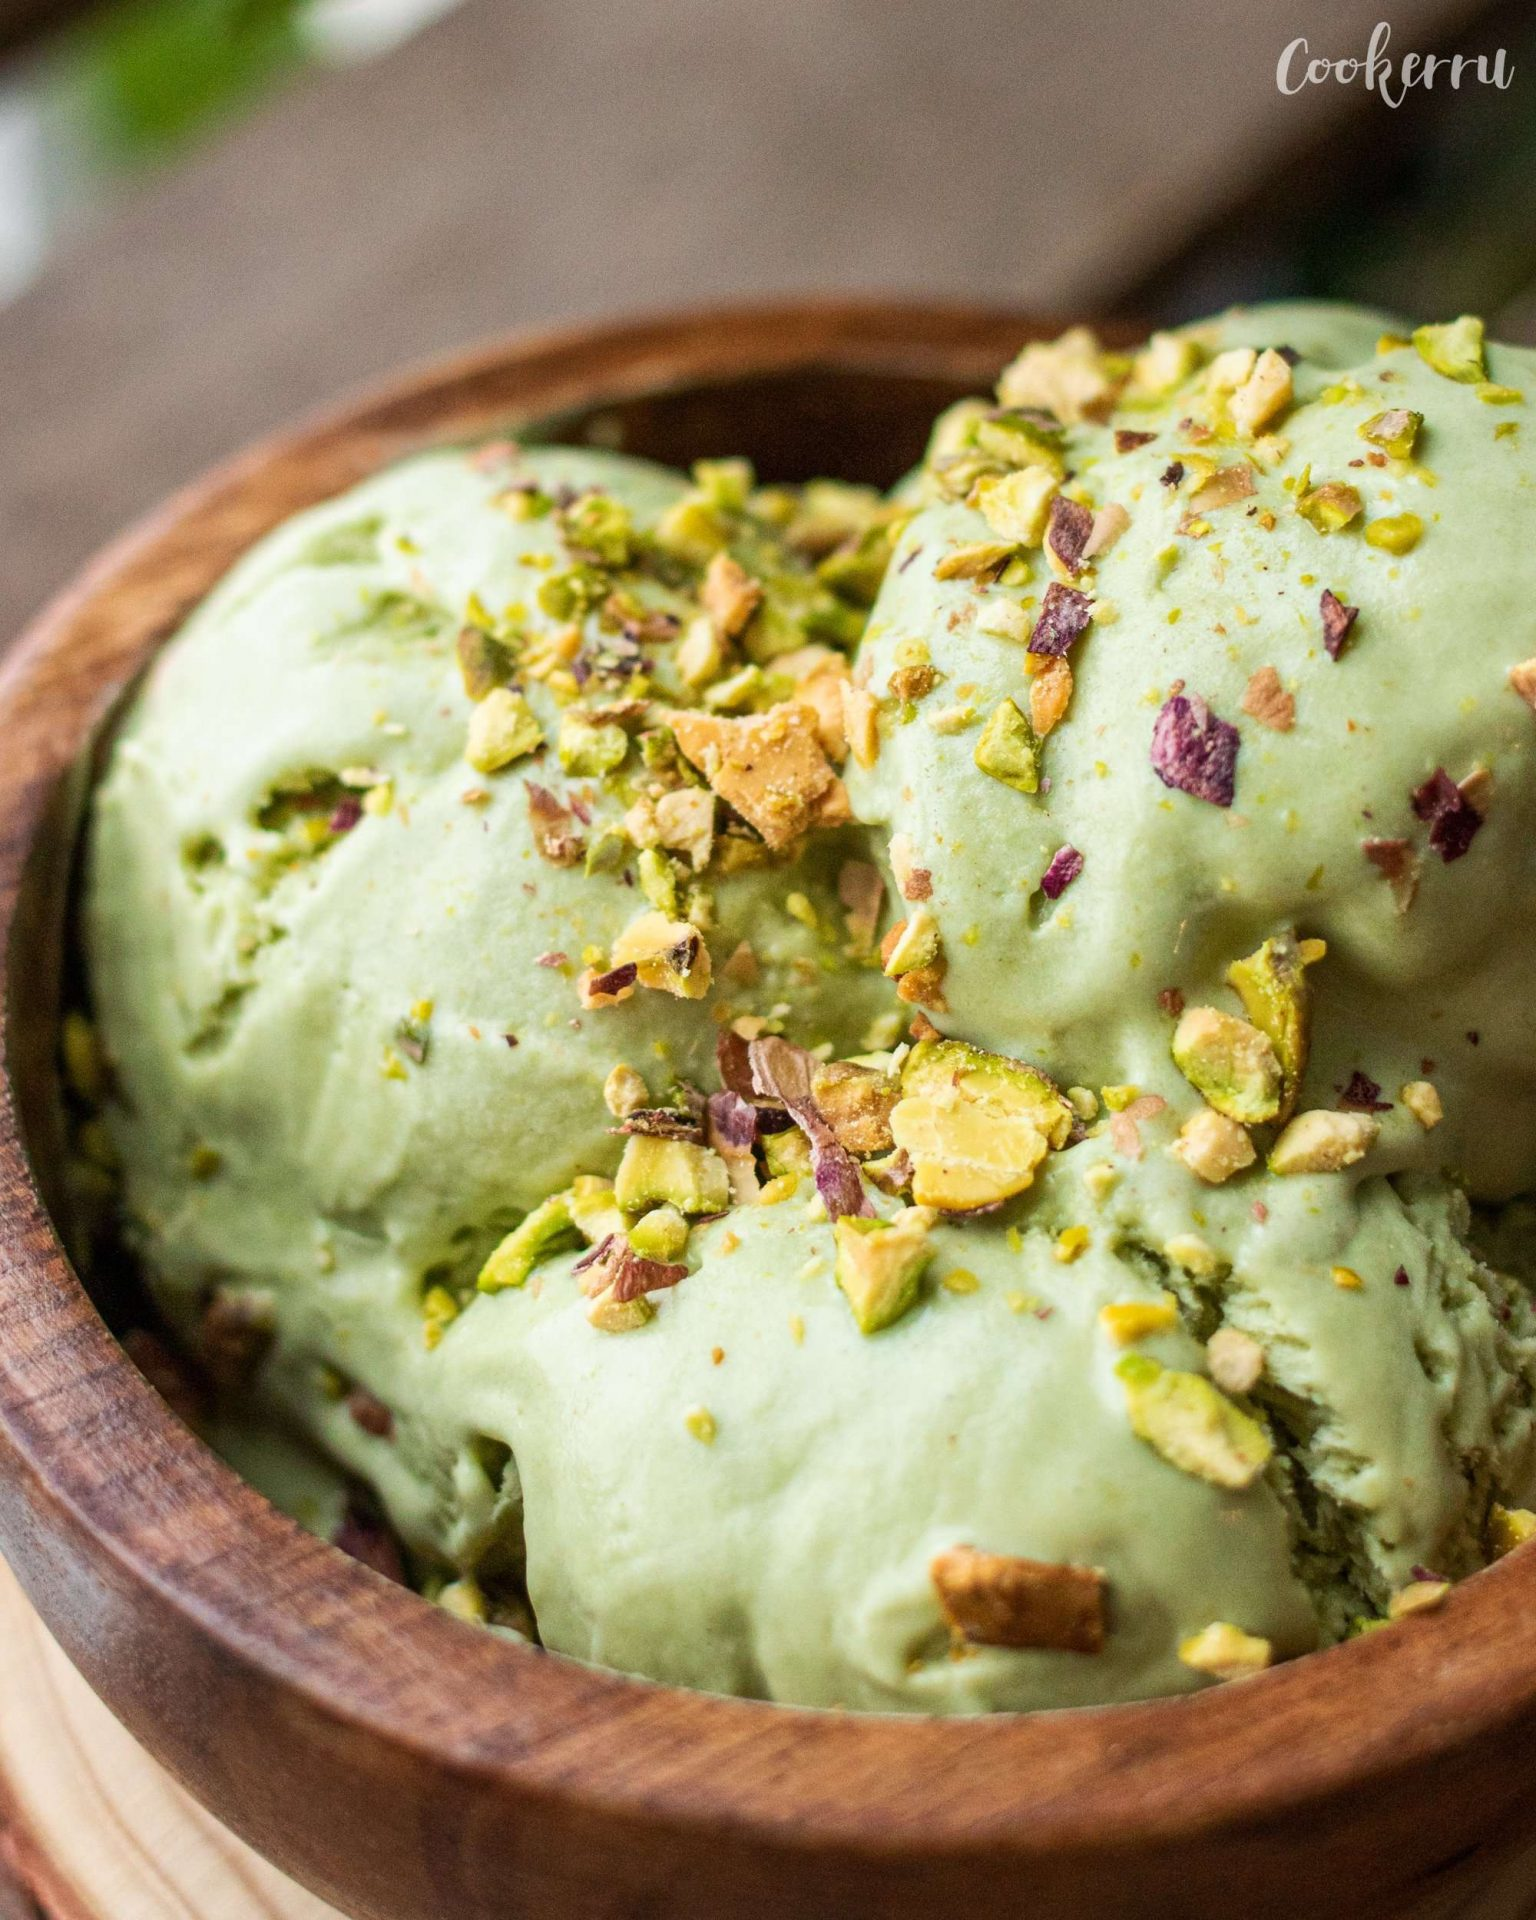 matcha ice cream with chopped pistachios on top